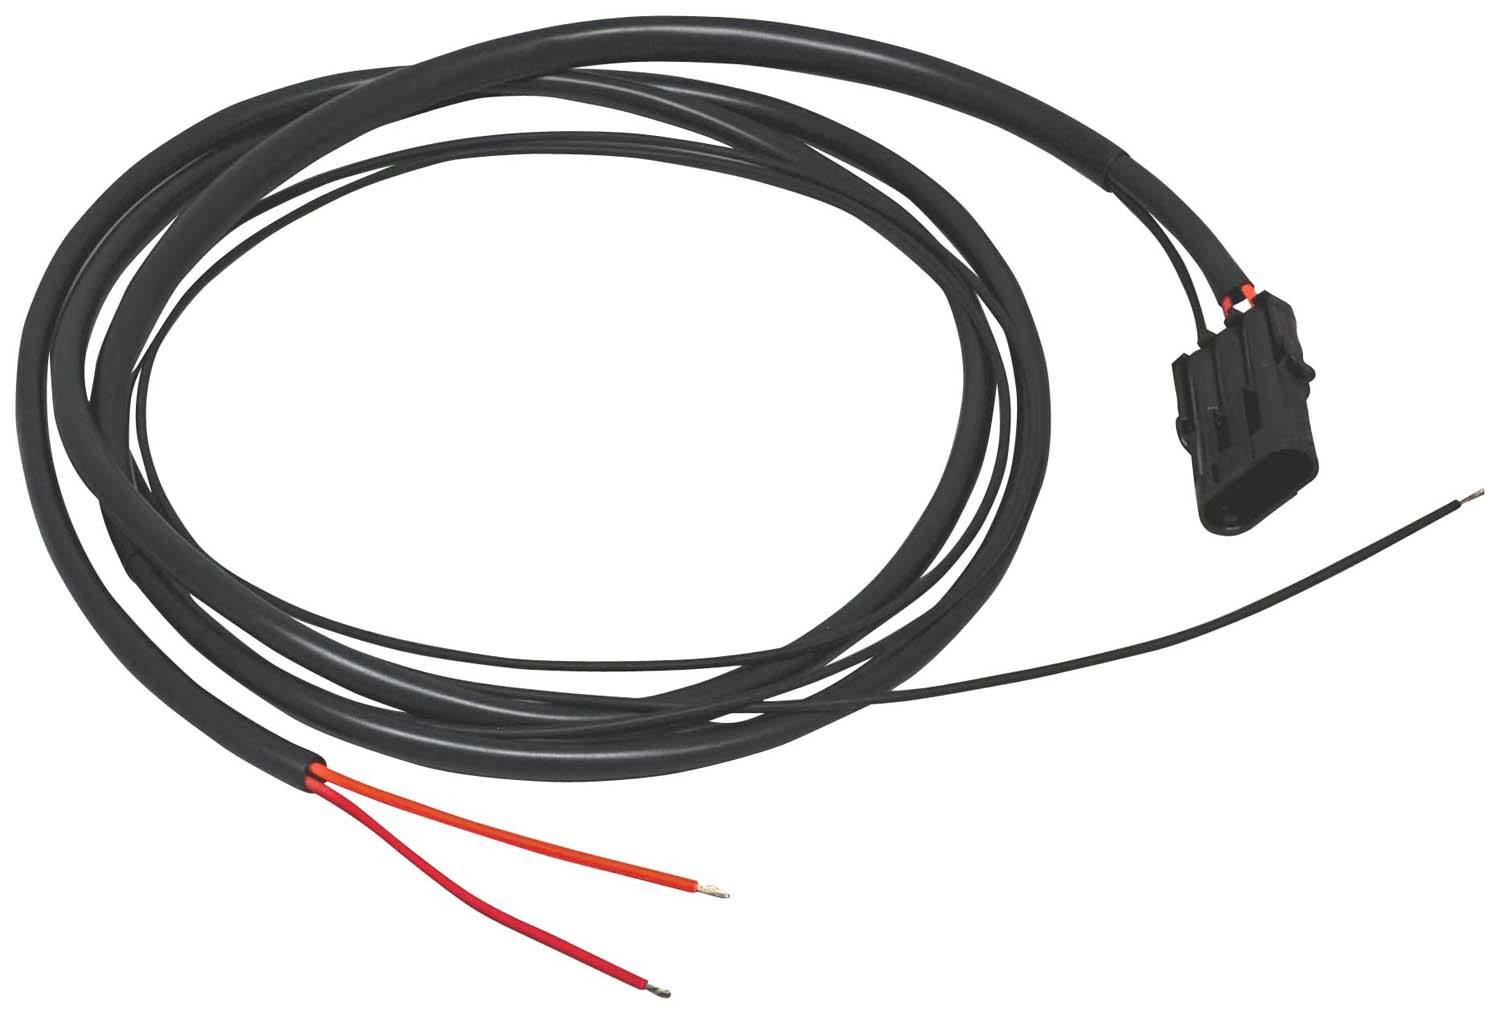 hight resolution of msd 8860 wiring harness wiring diagram centre msd 8860 wiring harness